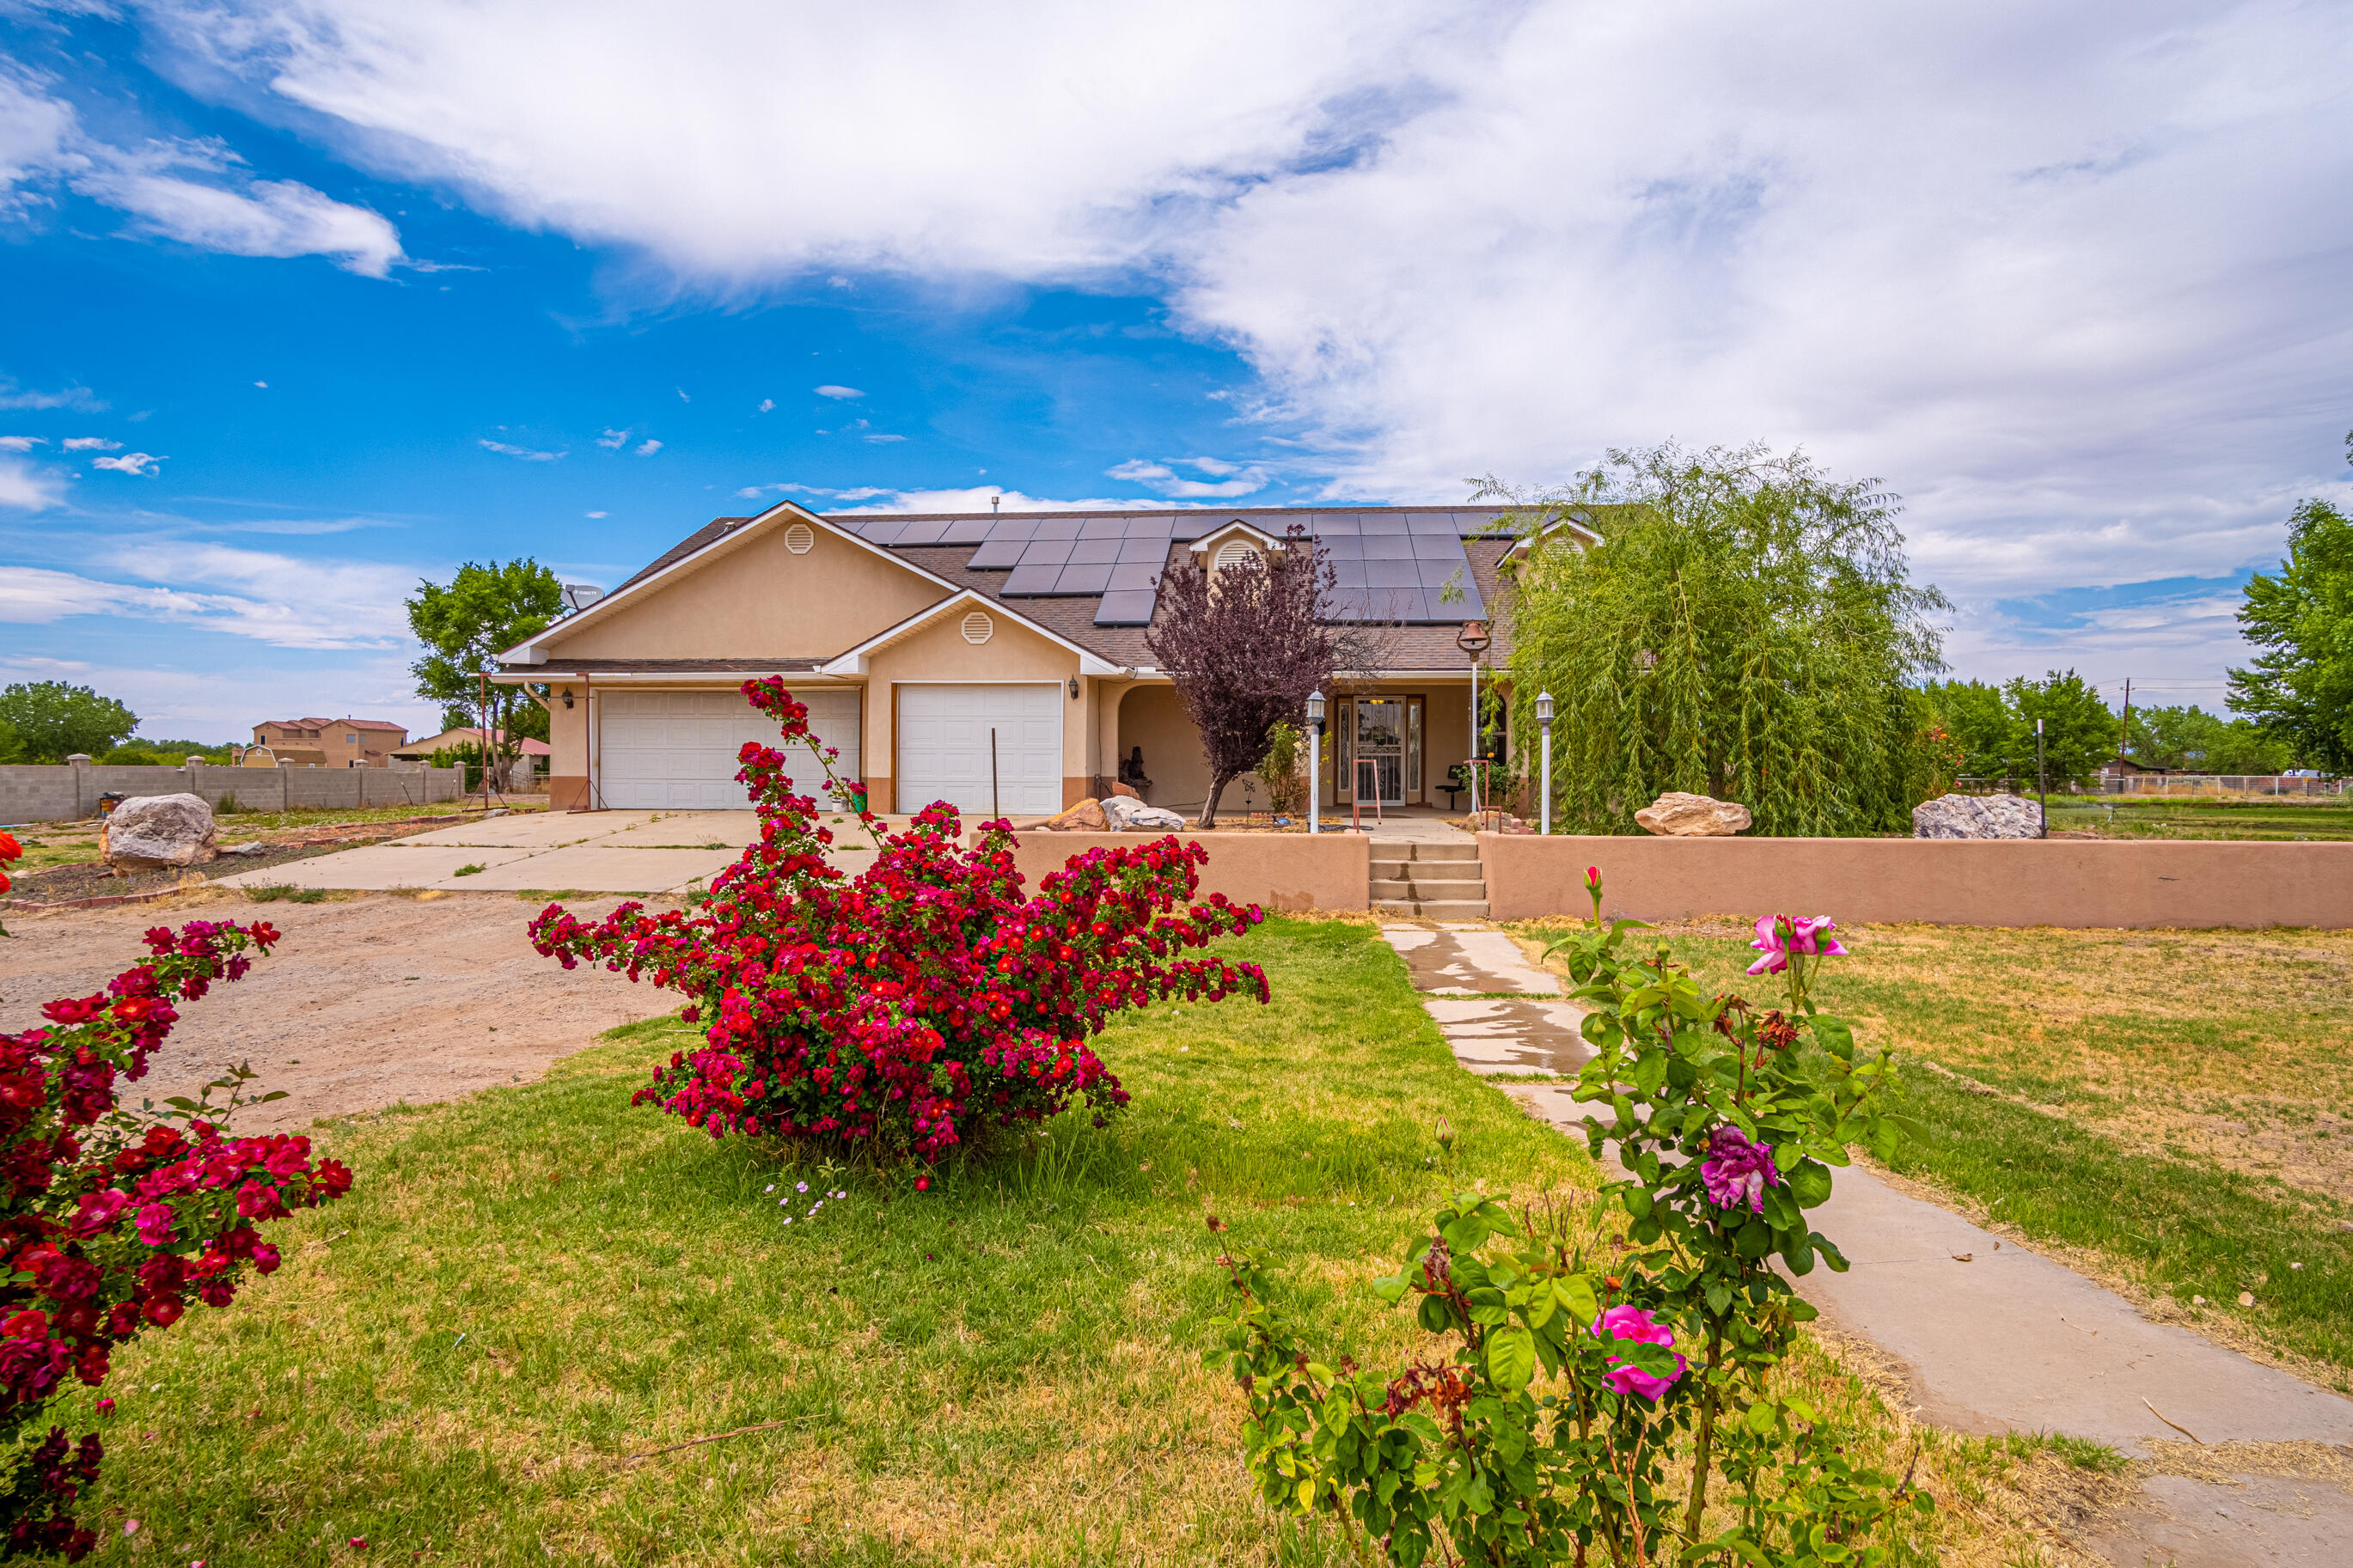 1.56 IRRIGATED ACRES!! This home has so much to offer, the master bedroom has a huge walk-in closet leading into an oversized bathroom with garden tub and separate shower. Also included is a 3 car garage with plenty of space for more toys.  The open kitchen is perfect for gathering with 2 stoves.